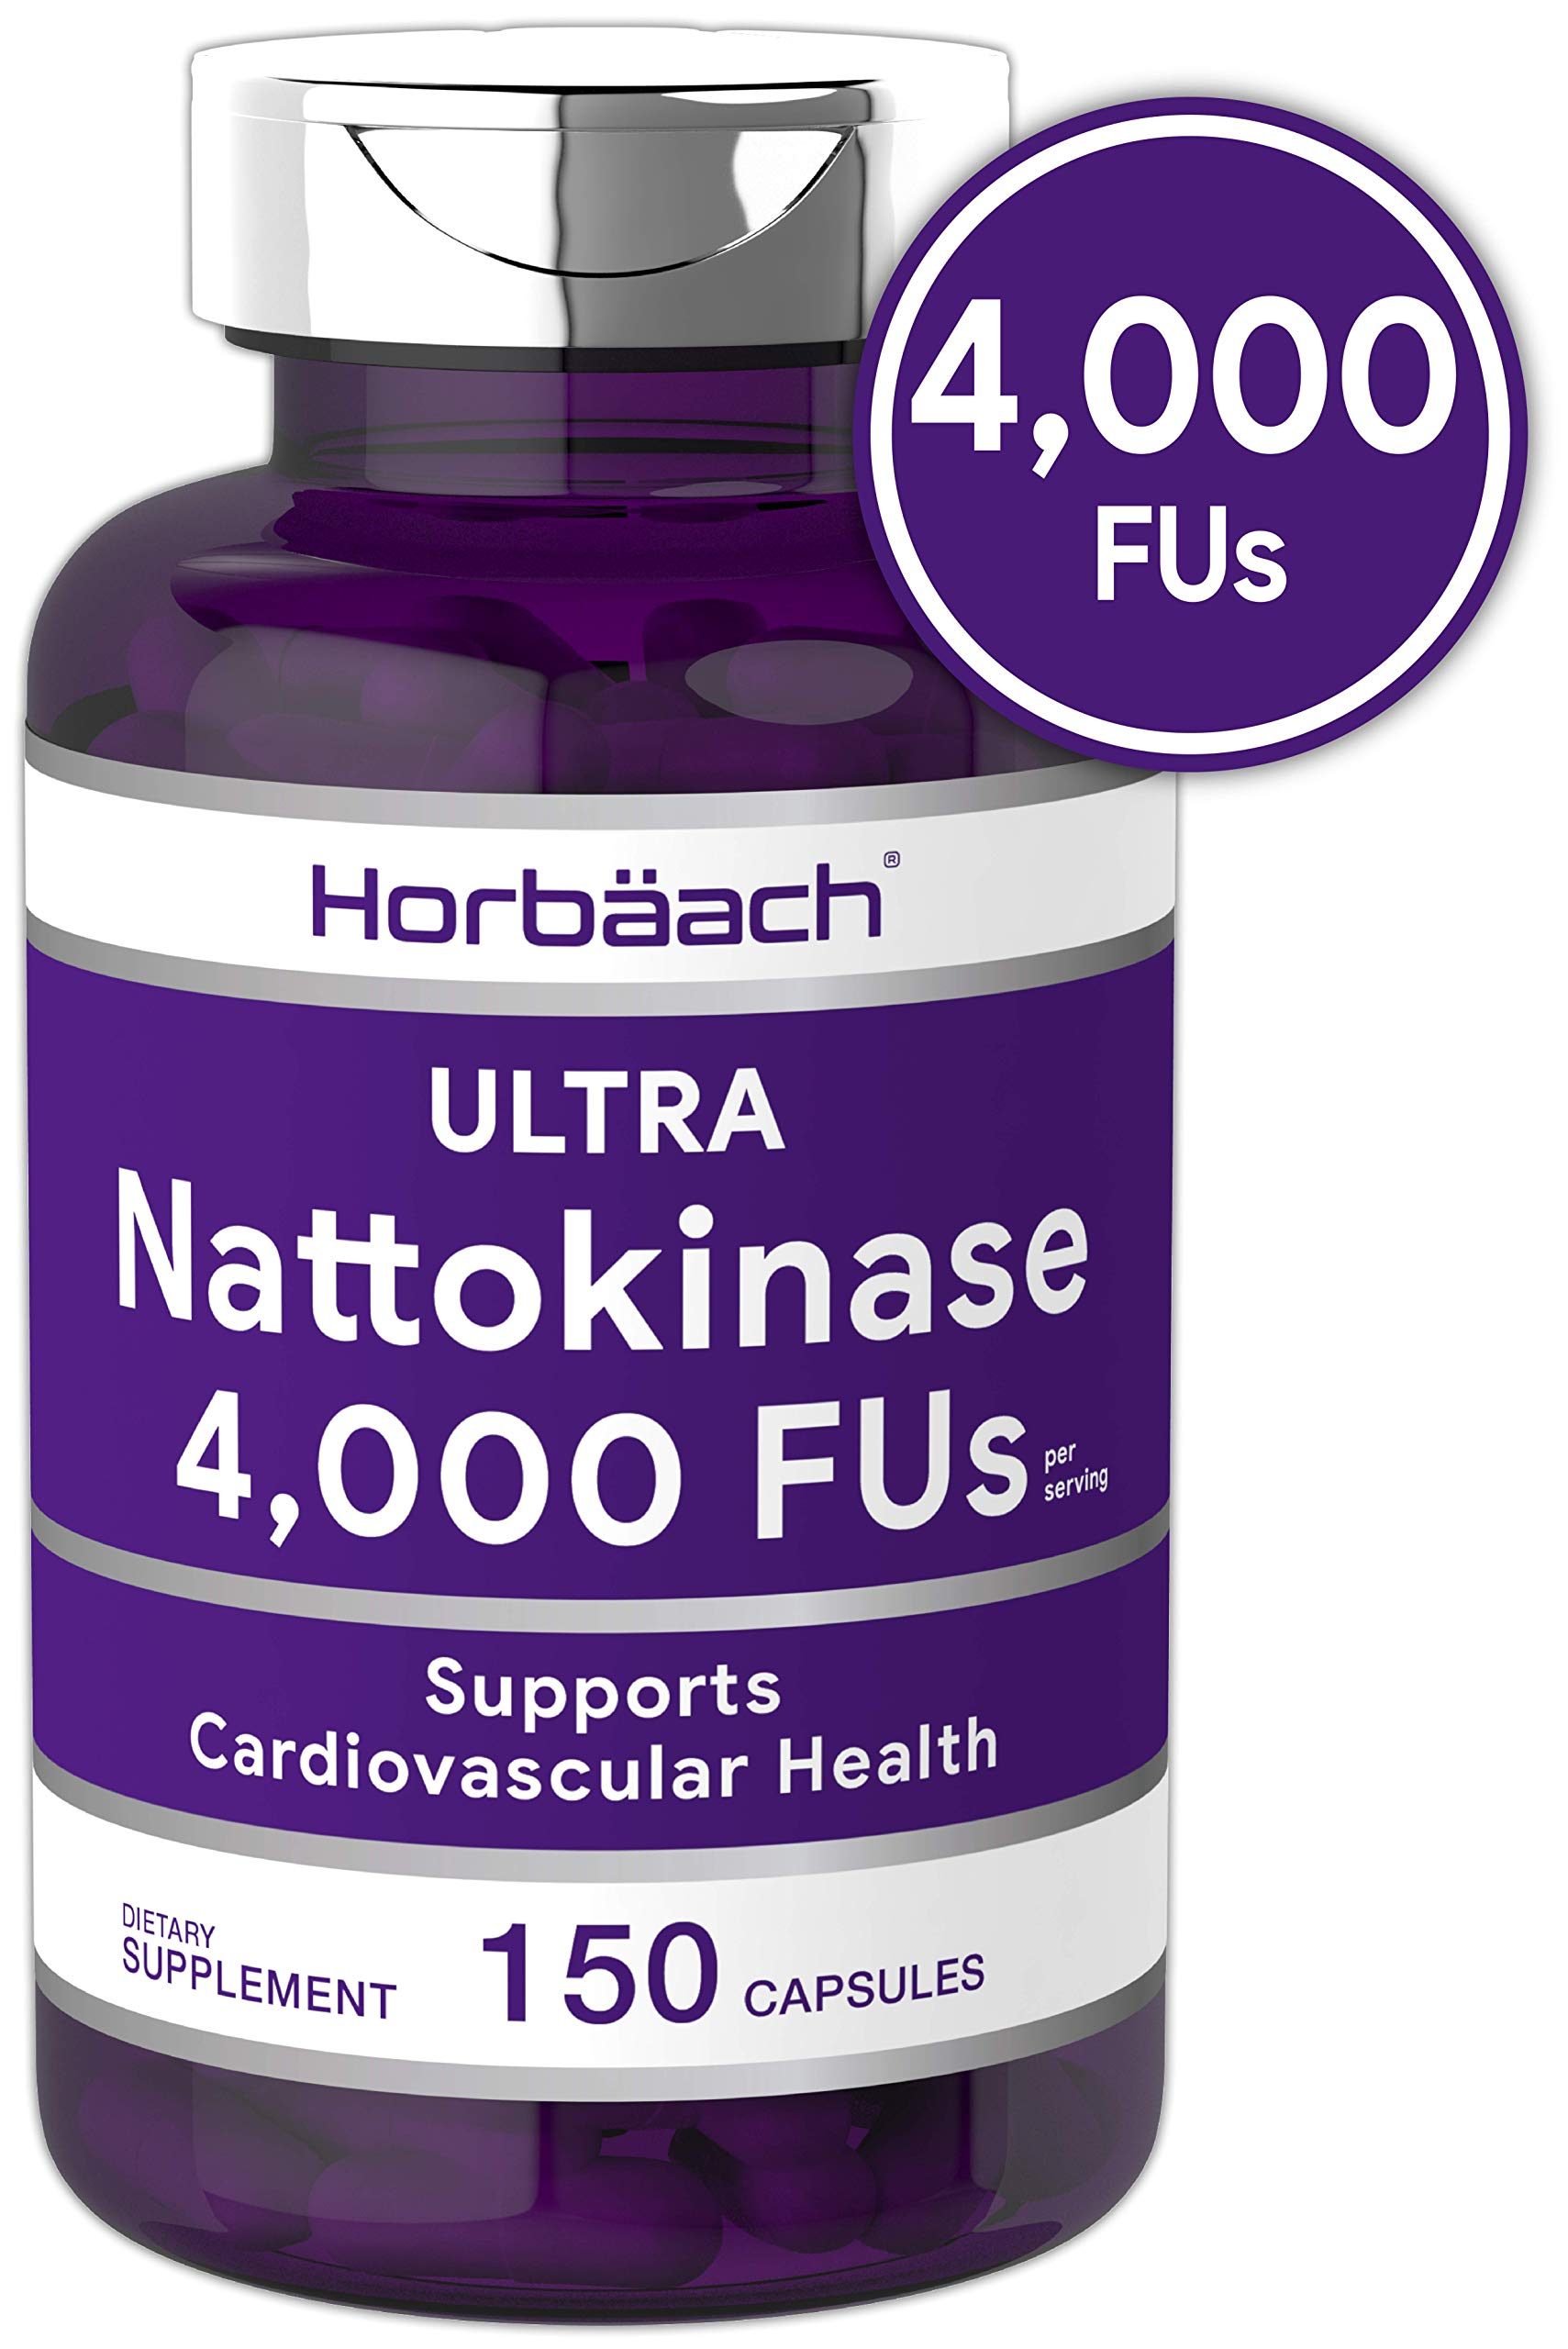 Nattokinase Supplement 4000 FU 150 Capsules | Non-GMO, Gluten Free | Supports Cardiovascular and Circulatory Health | by Horbaach by Horbäach